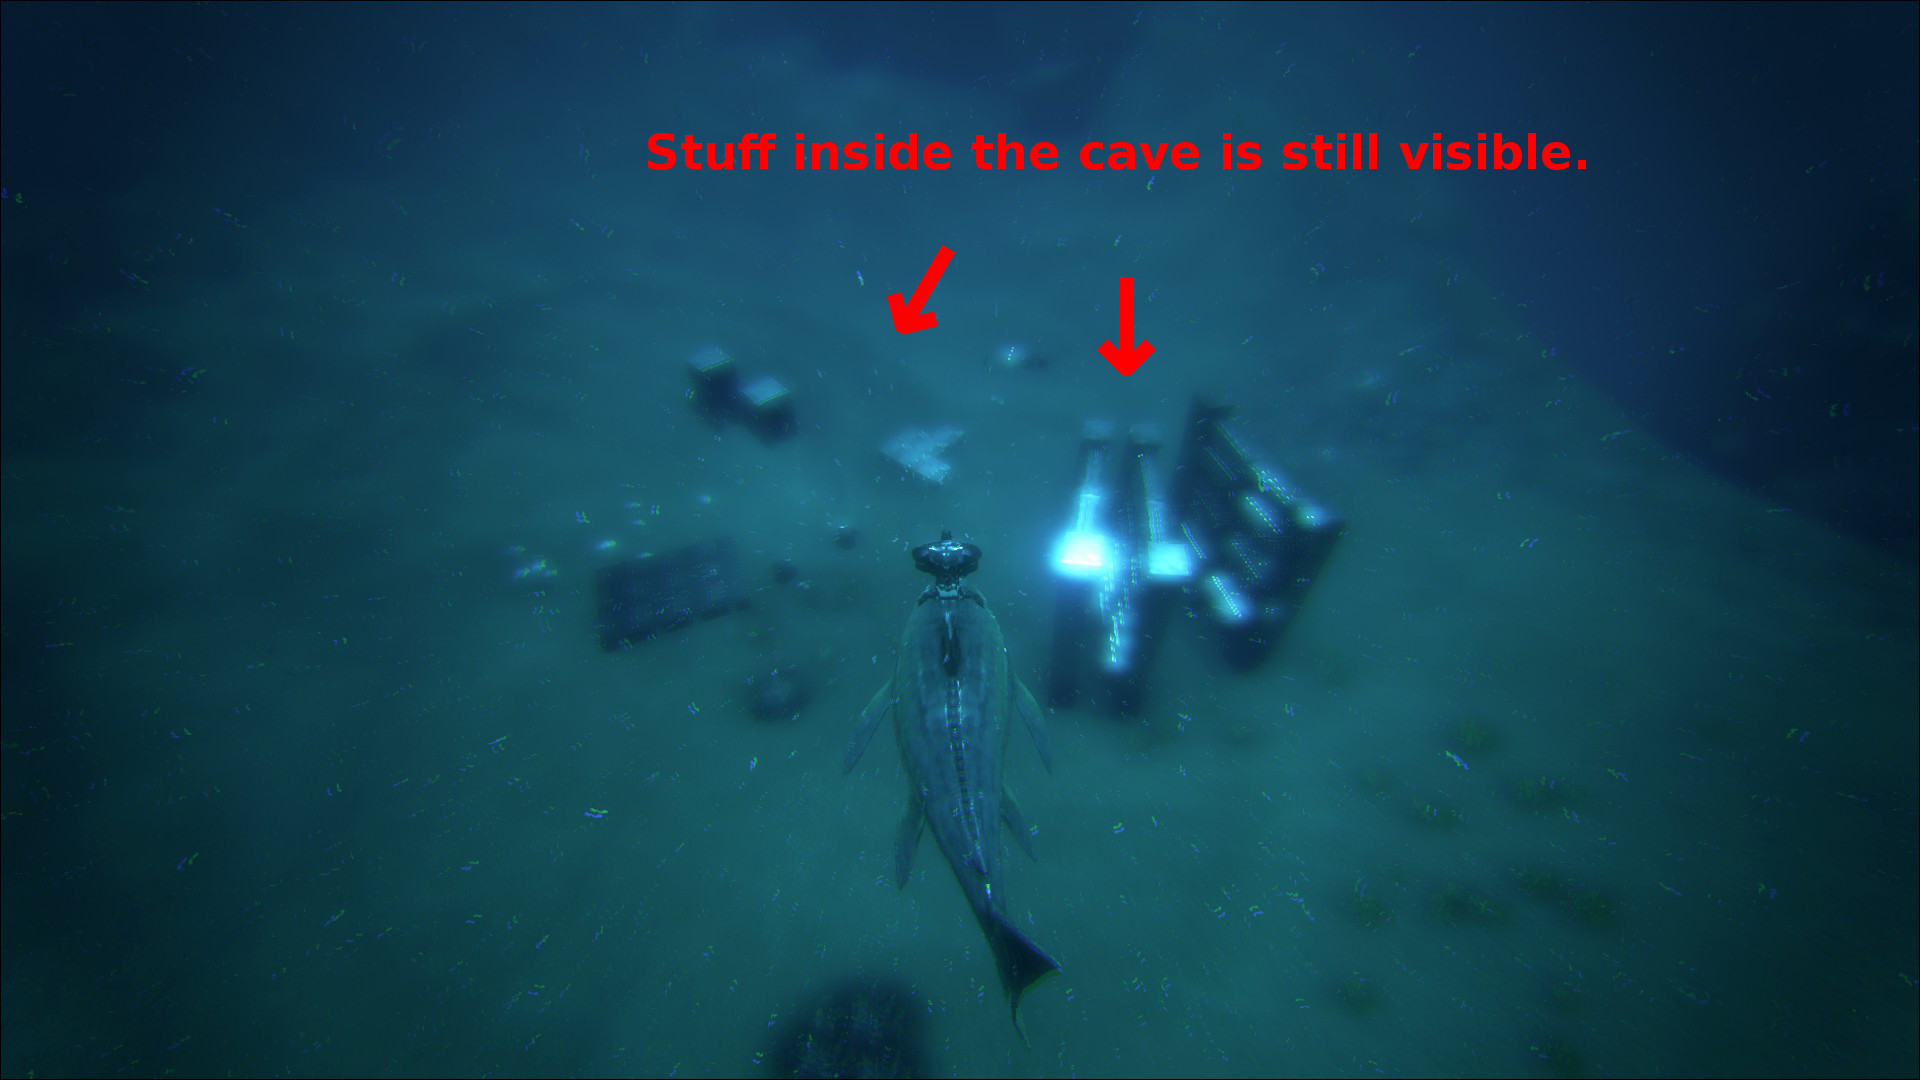 ... ARK Survival Evolved The Center Map Caves Locations Map Coordinates  Animals Resources Artifacts Deep Sea Loot ARK Survival Evolved Guide The  Center Map ...